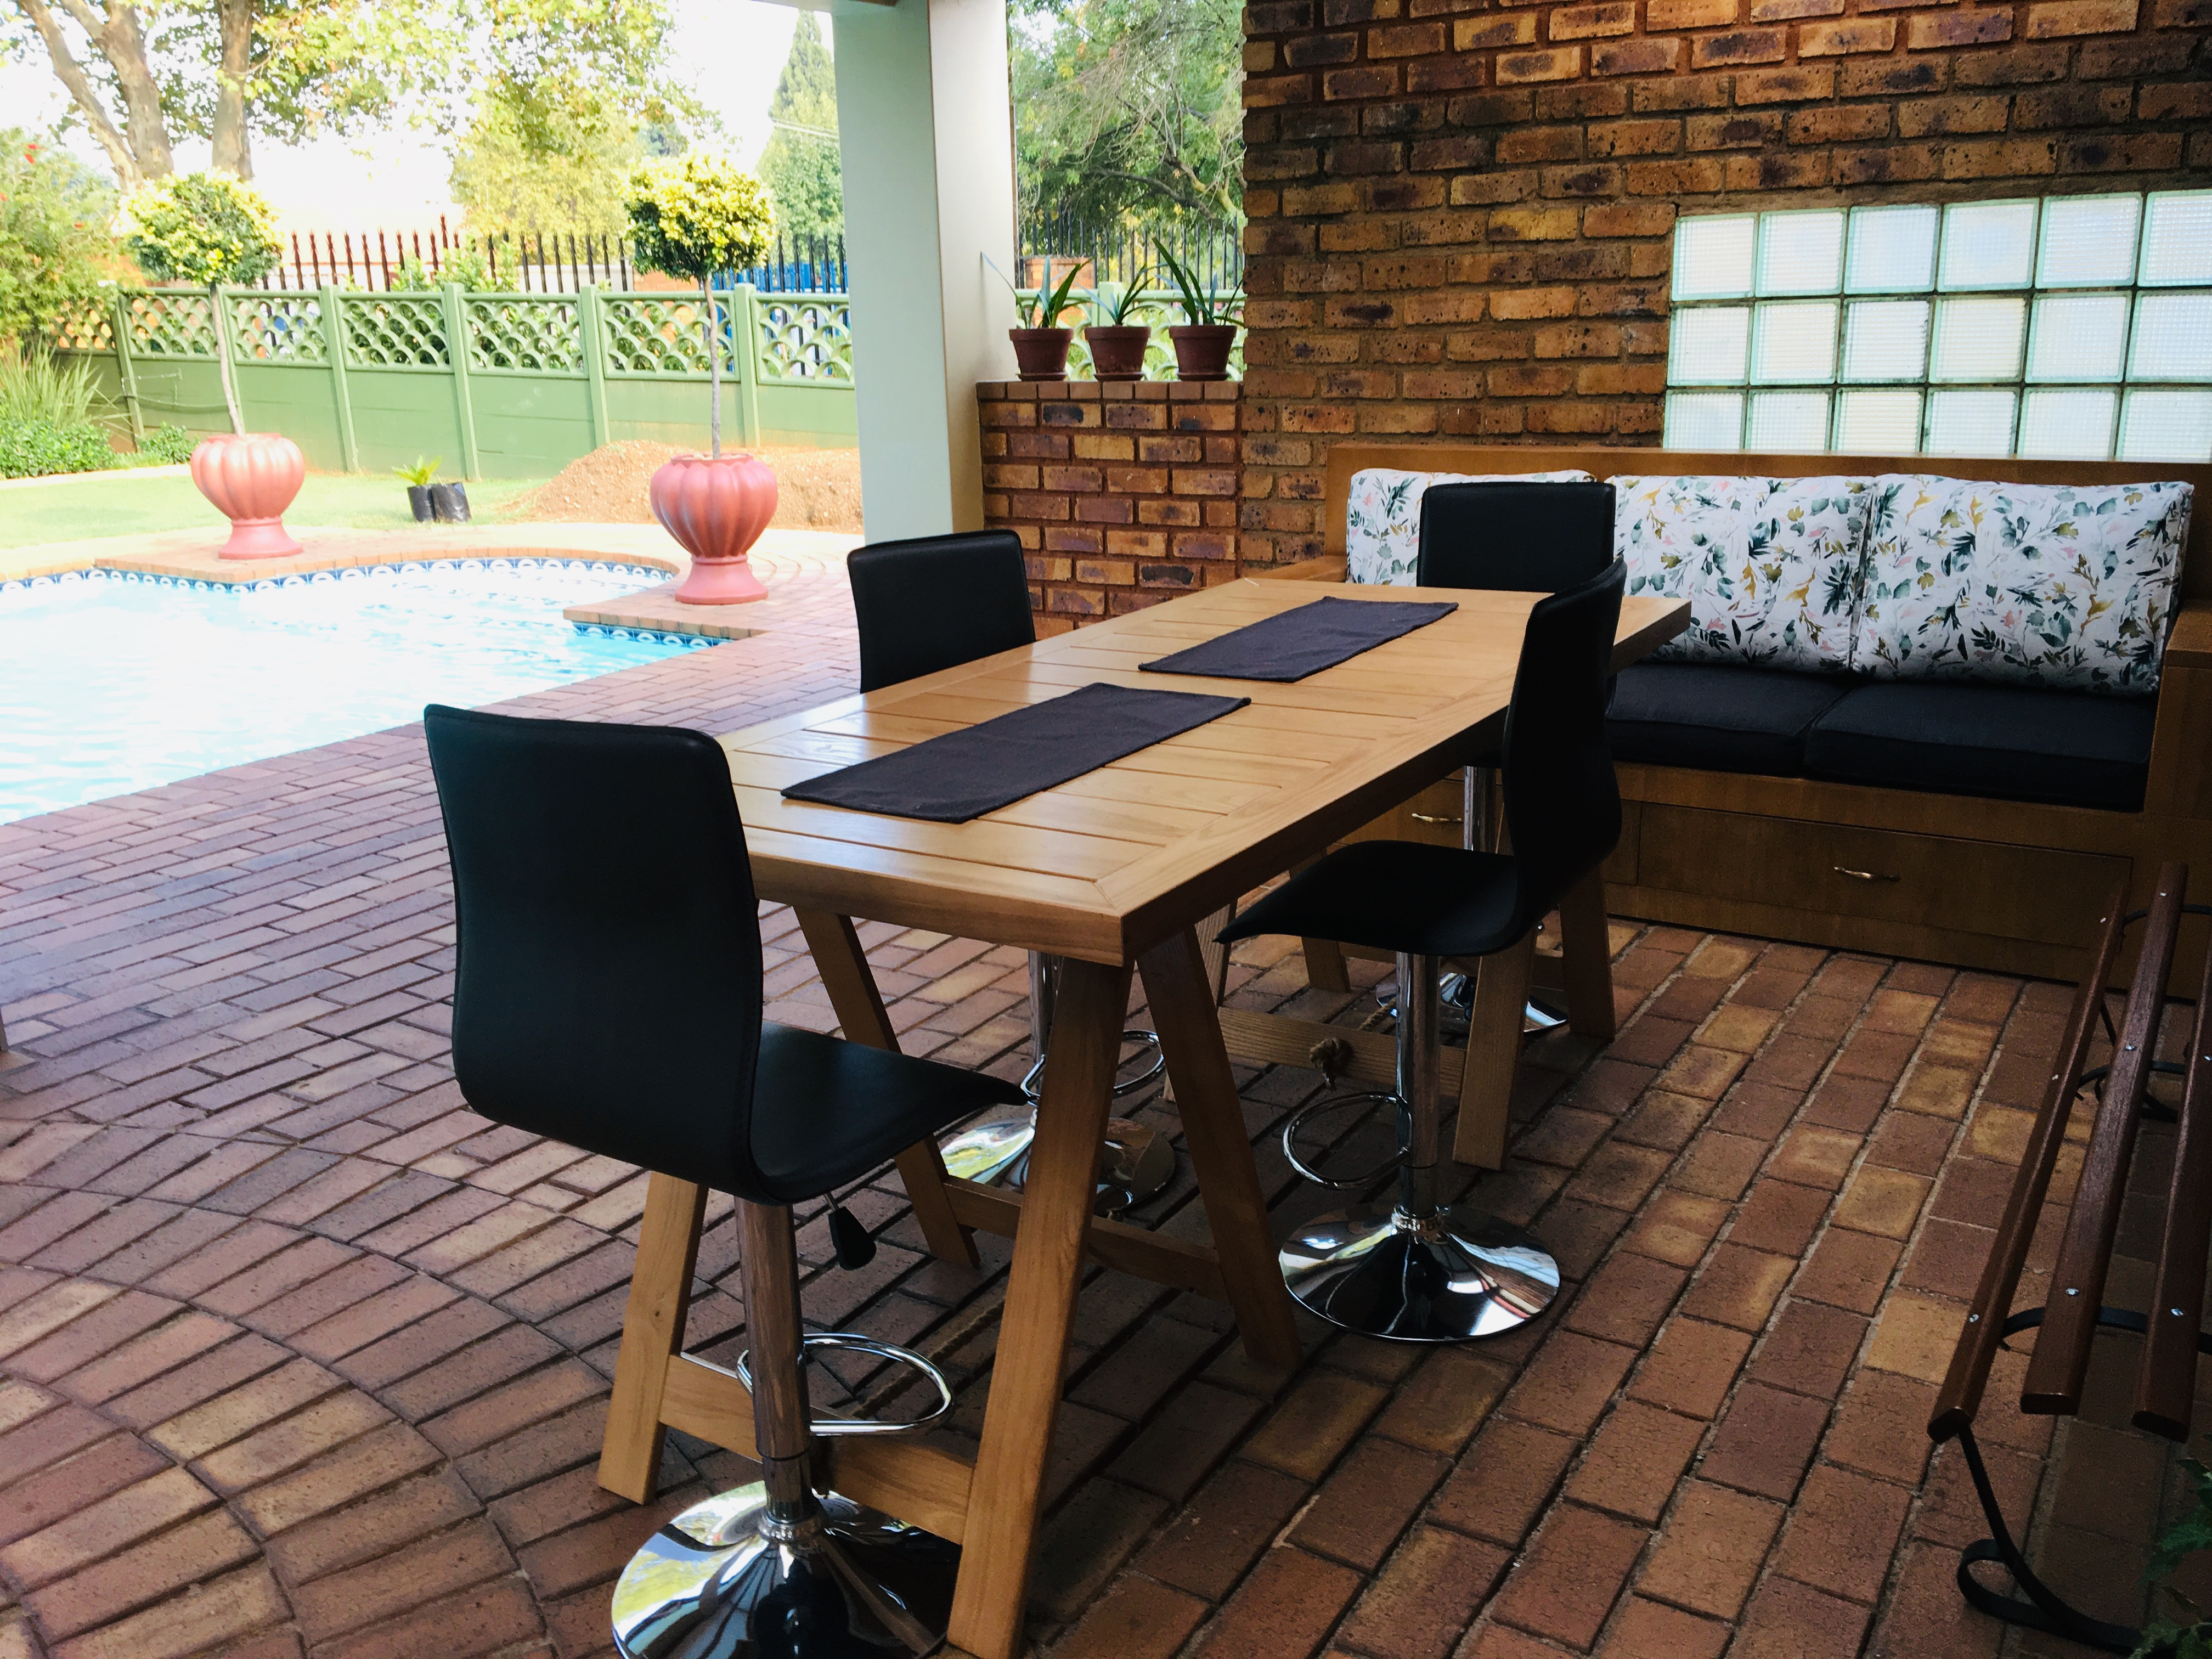 Design Furniture - Outdoor Table